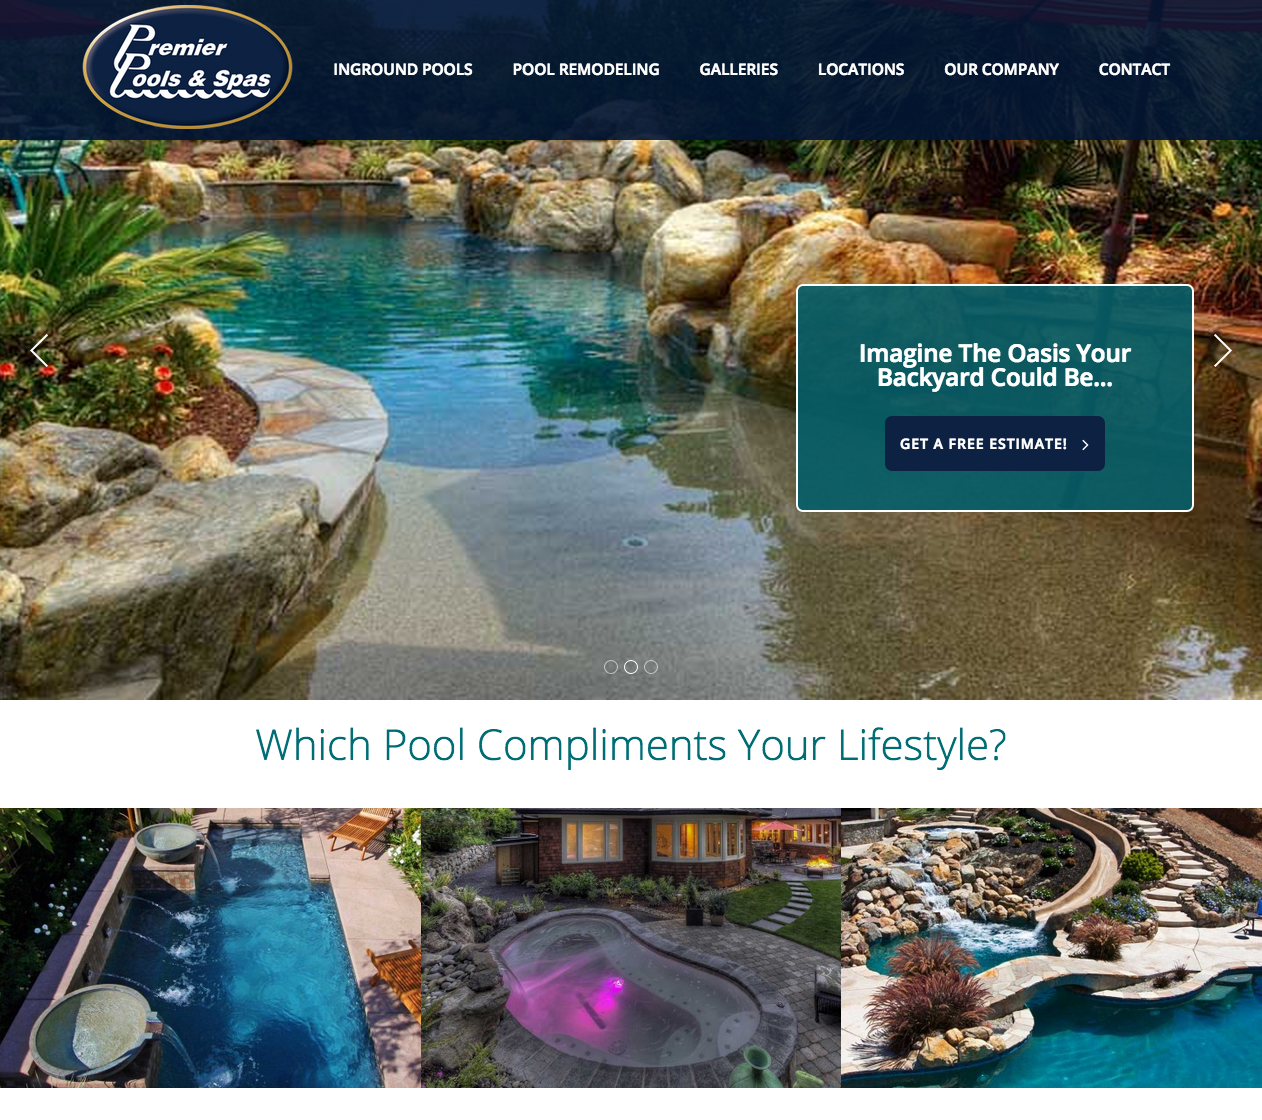 Top 4 complaints and reviews about premier pools and spas for Premier pools